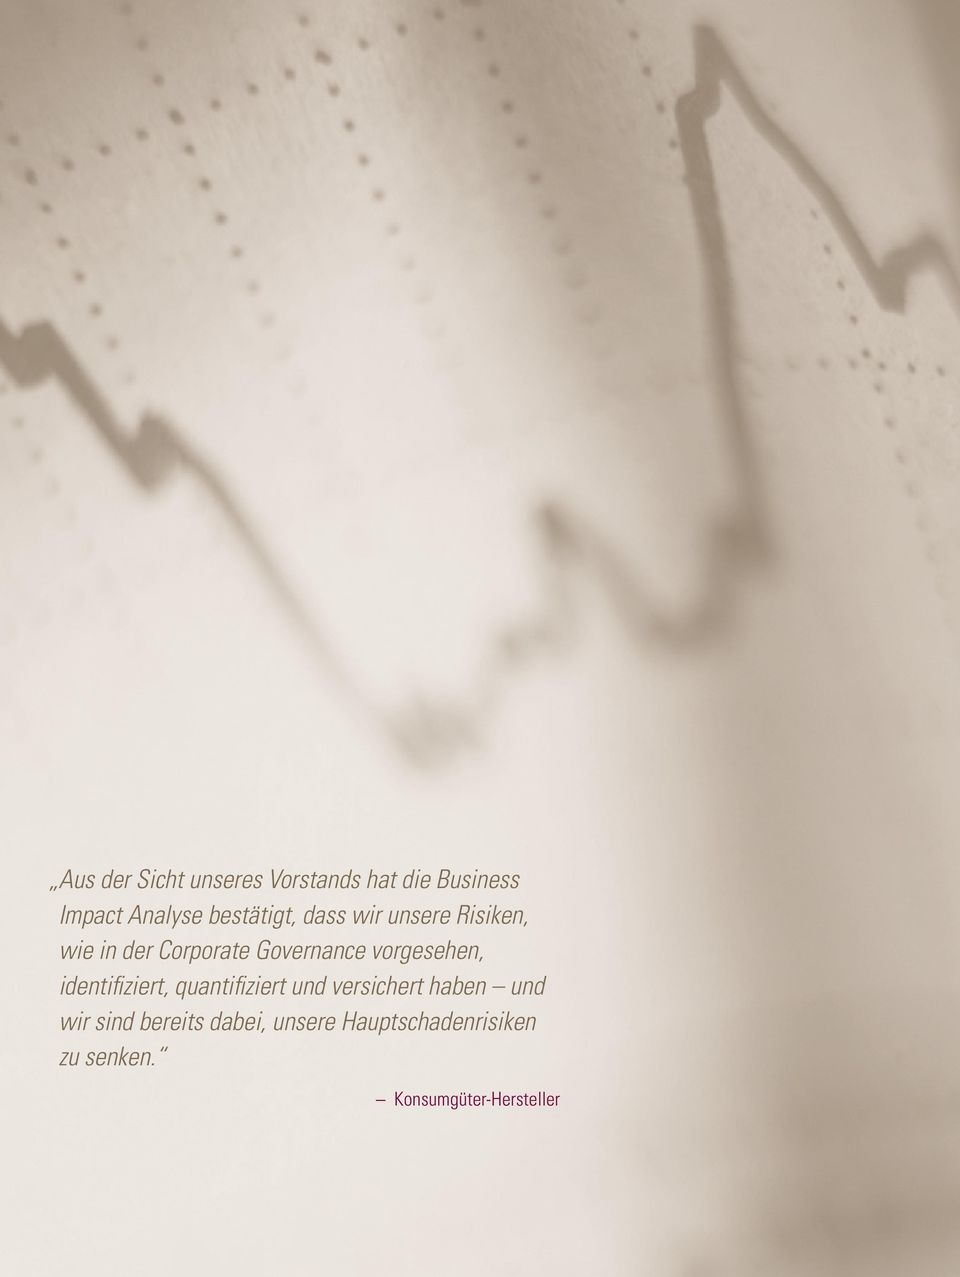 Konsumgüter-Hersteller This brochure is made available for informational purposes only in support of the insurance relationship between FM Global